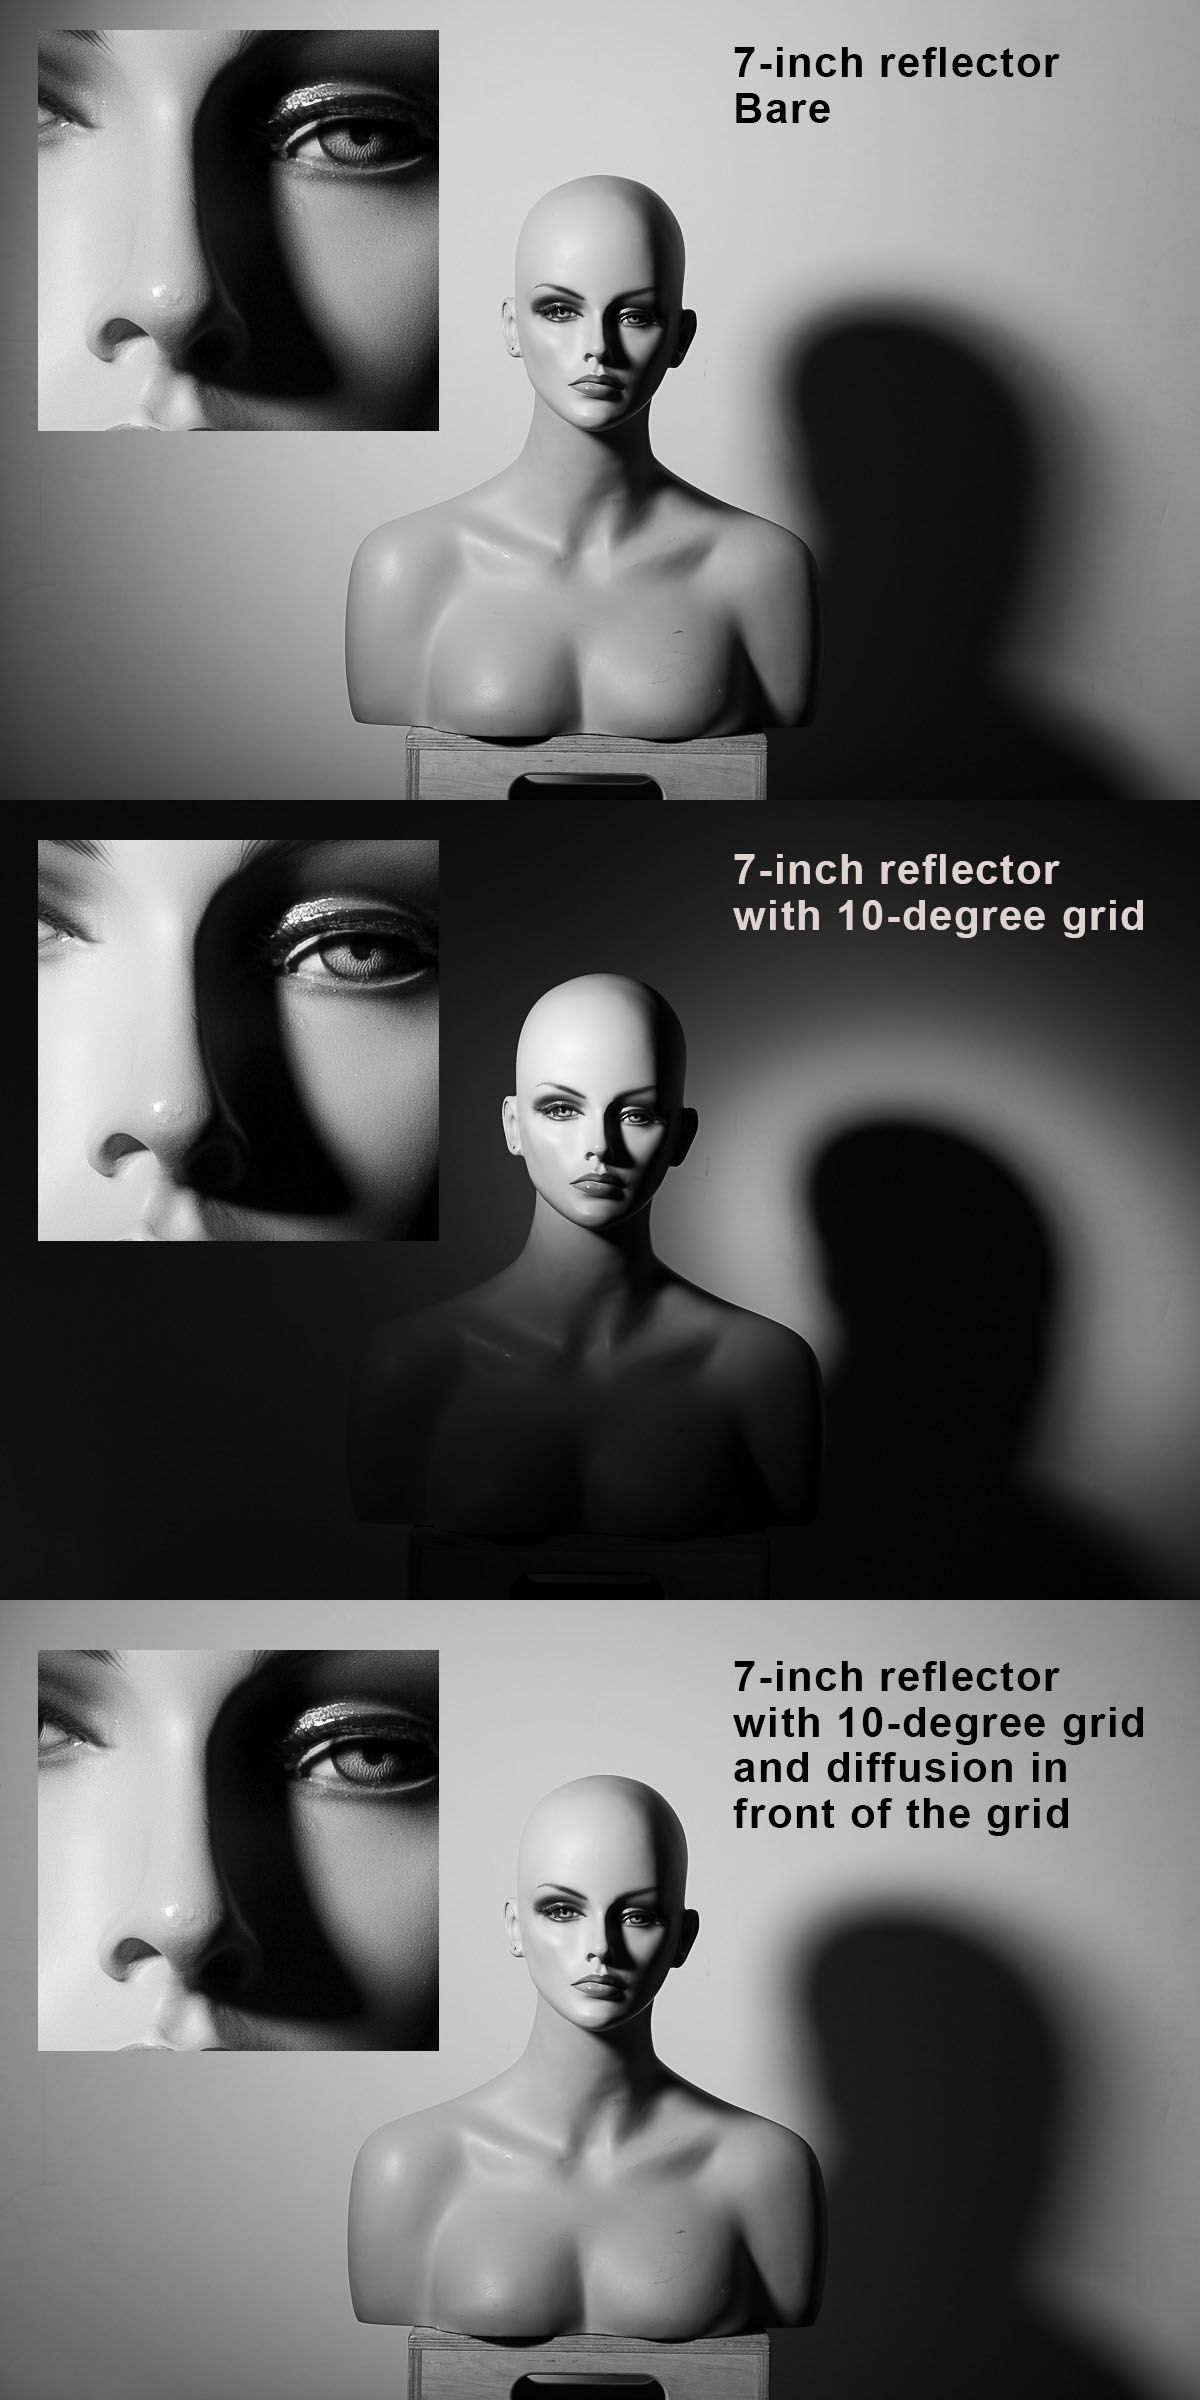 7-inch reflector bare, with a grid, and with a grid + diffusion